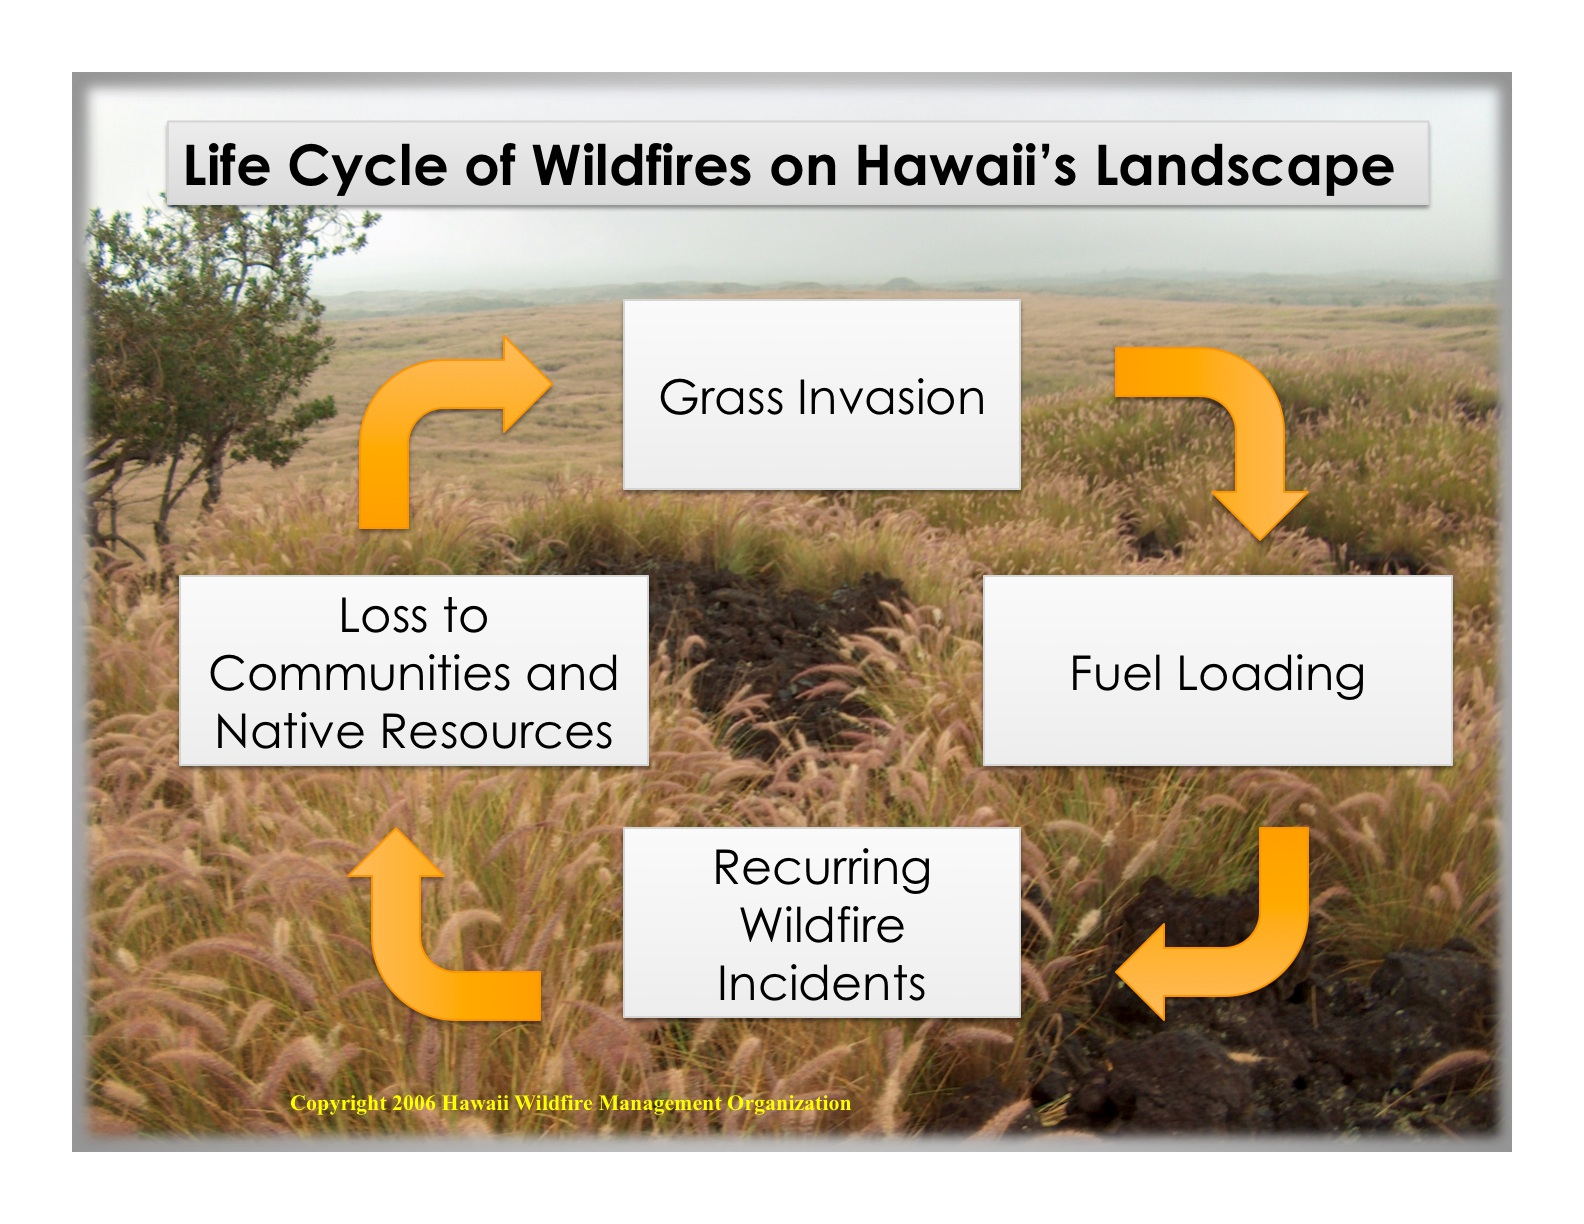 Grass Fire Cycle in Hawaii